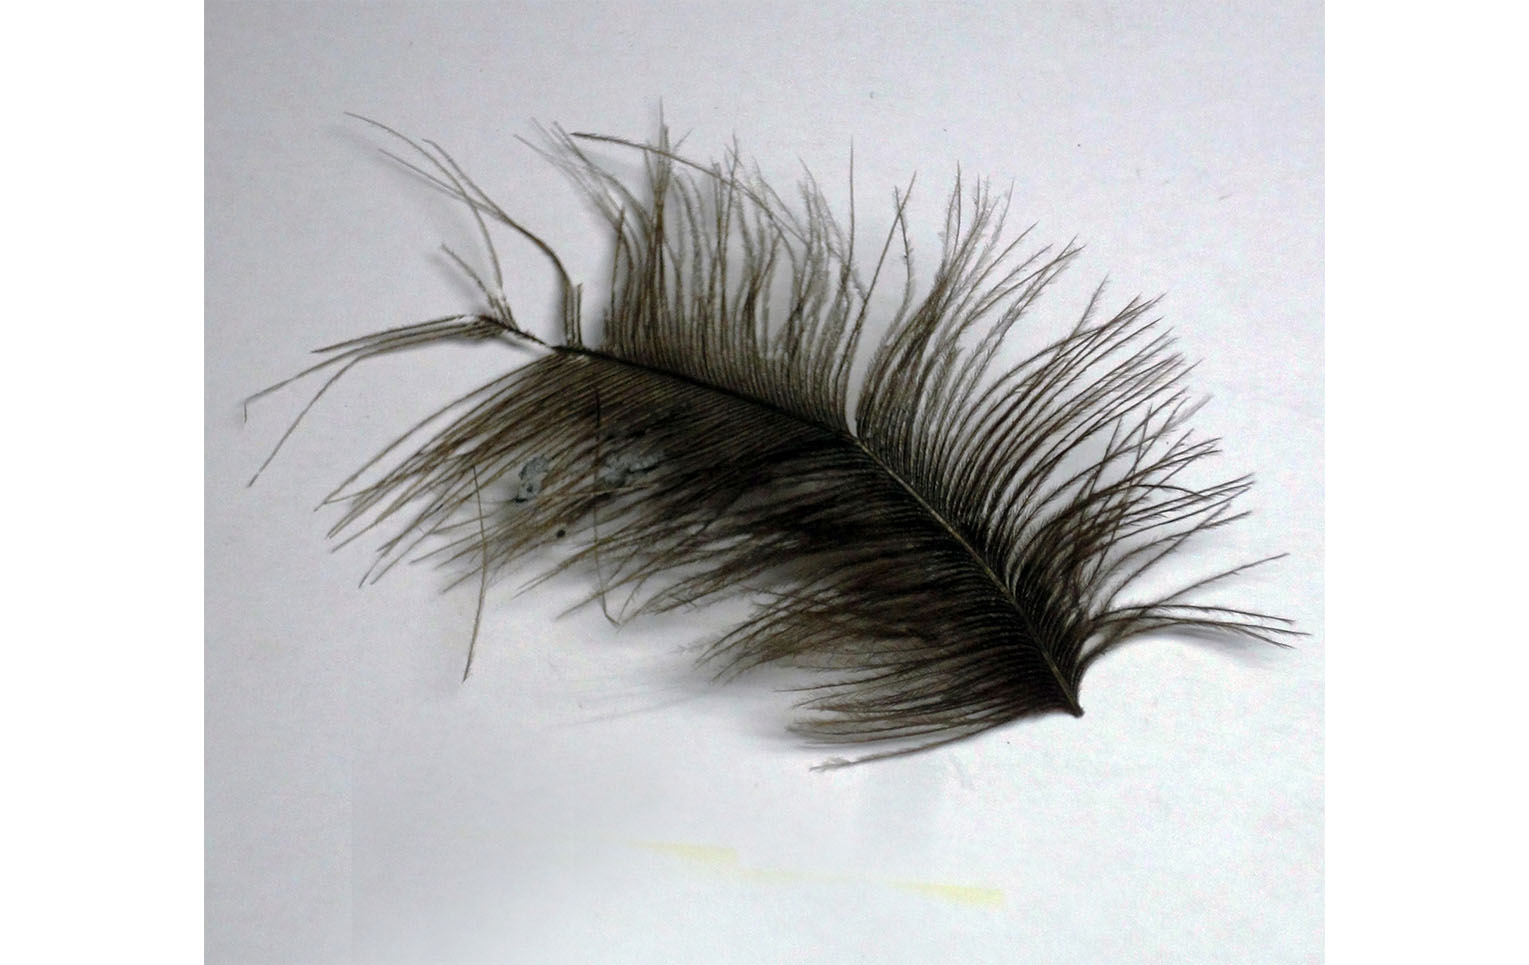 Feather from a feather duster